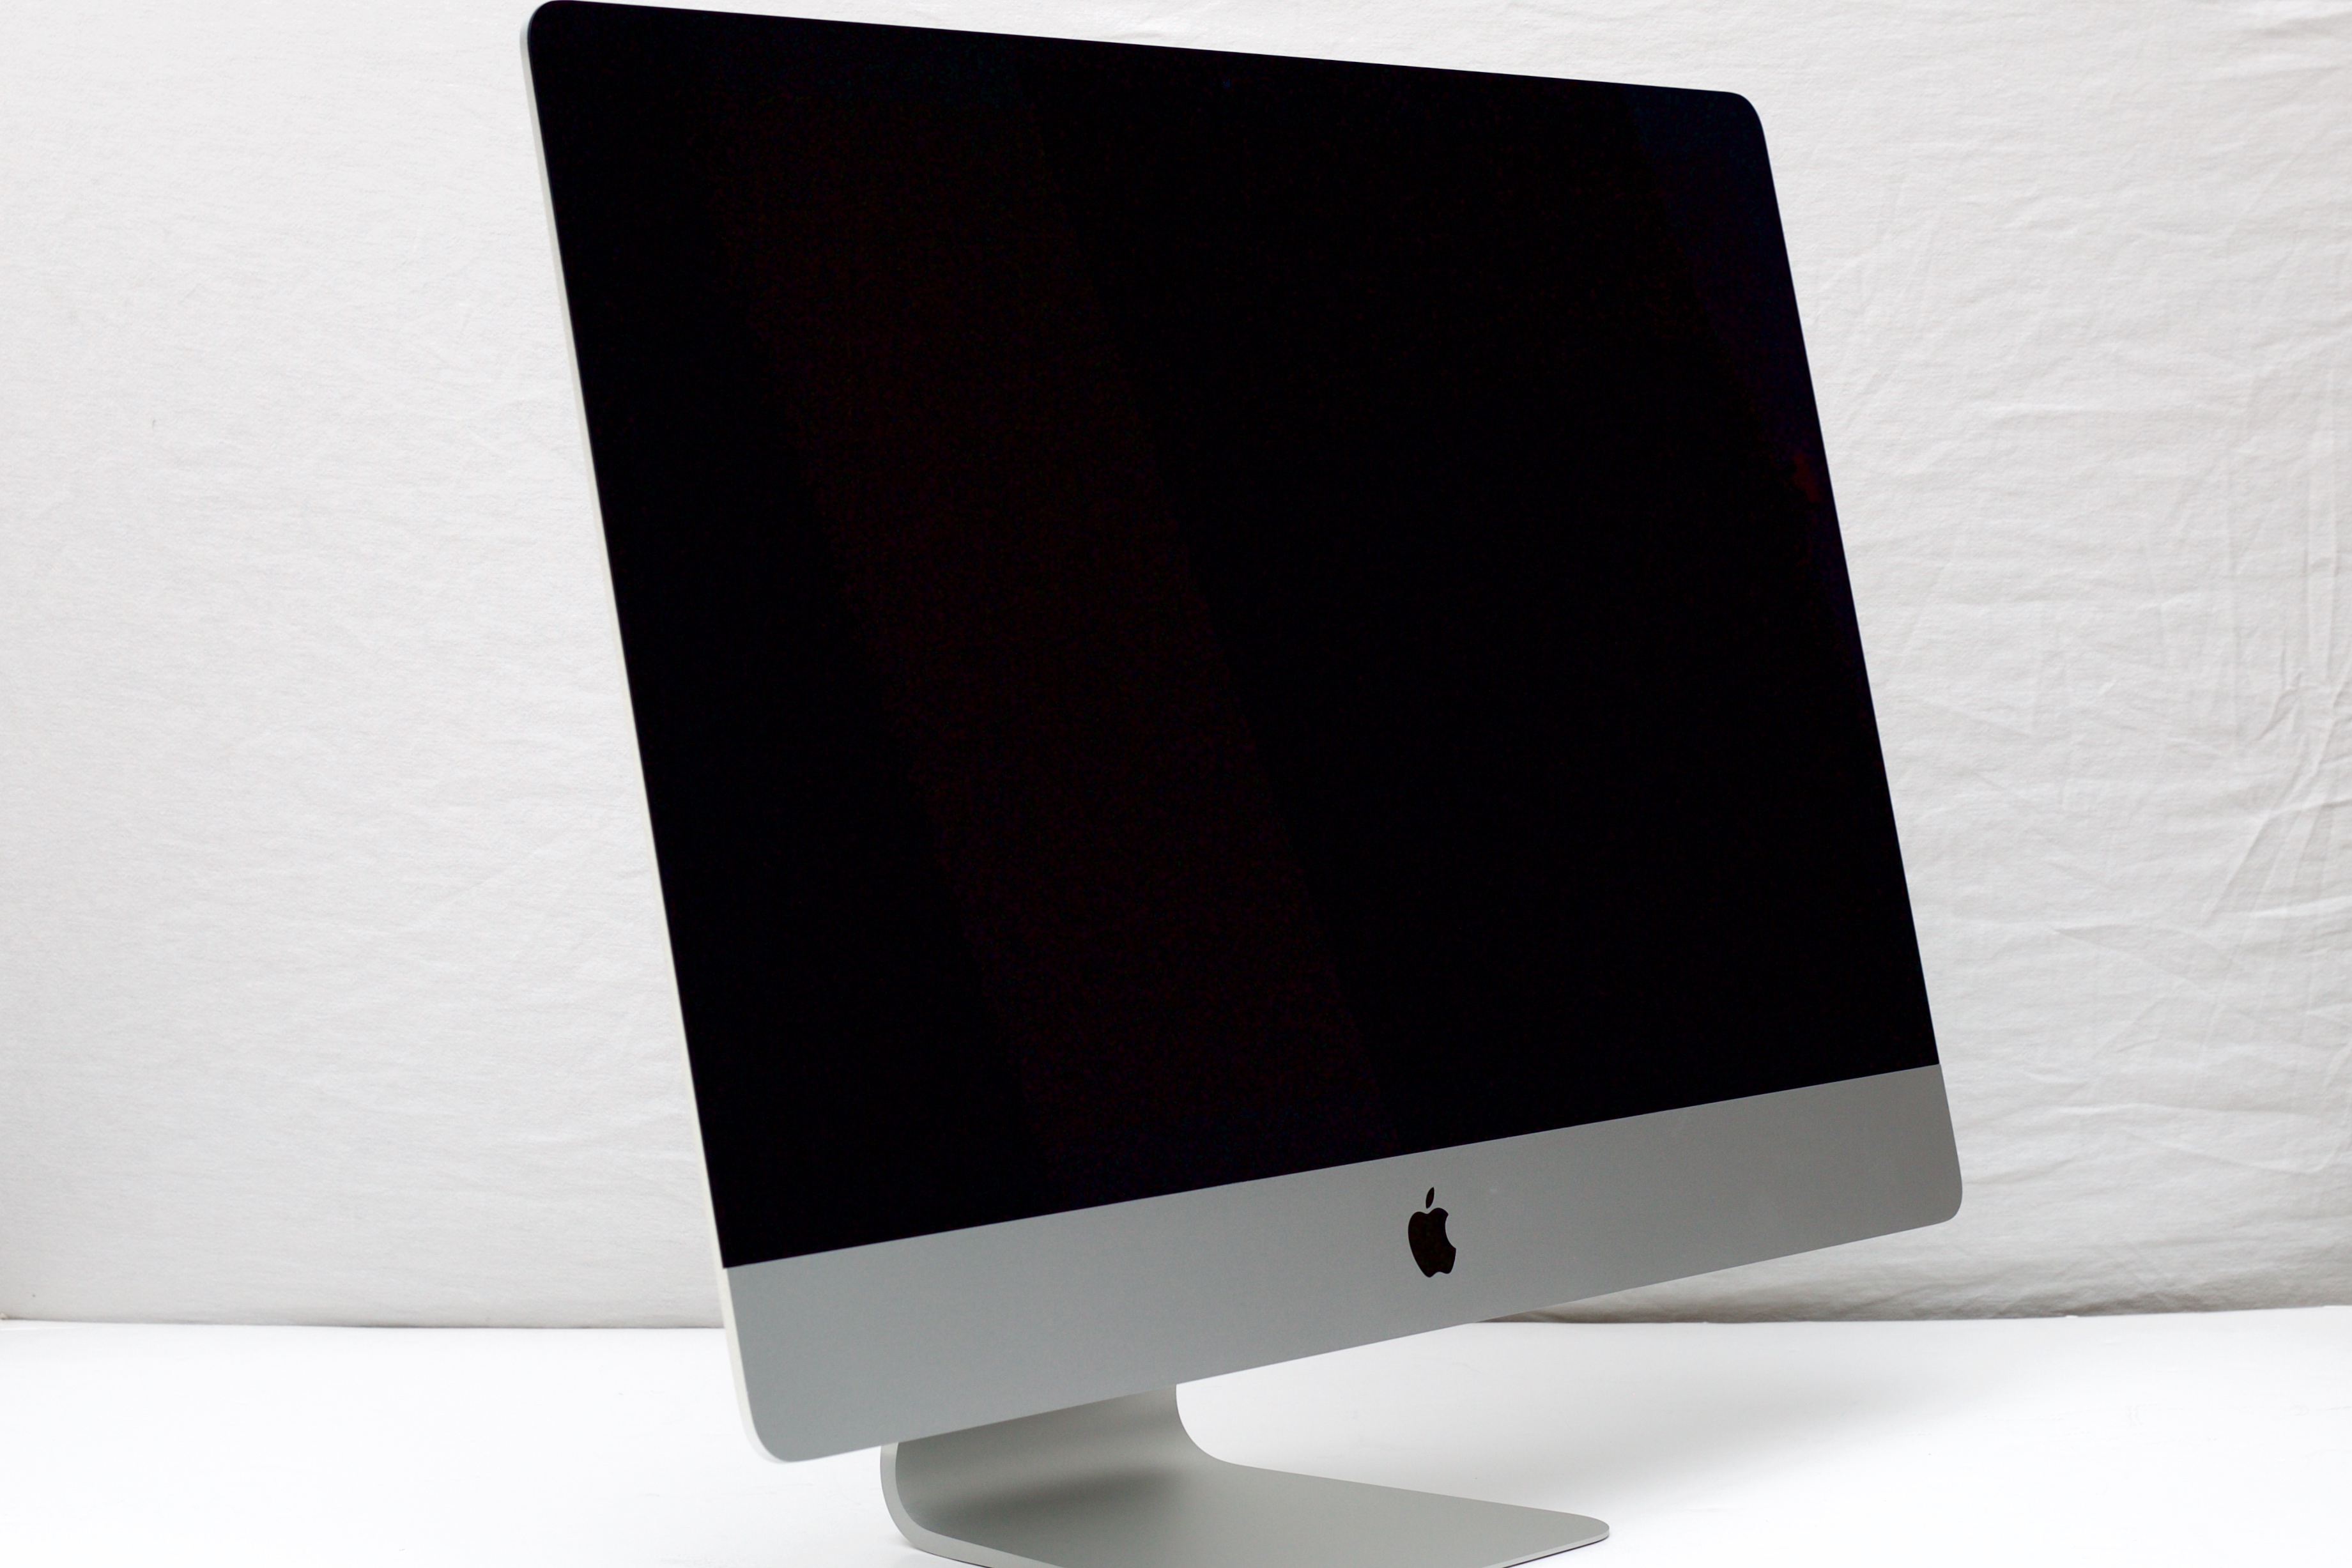 The new iMac—externally, same as the old iMac.